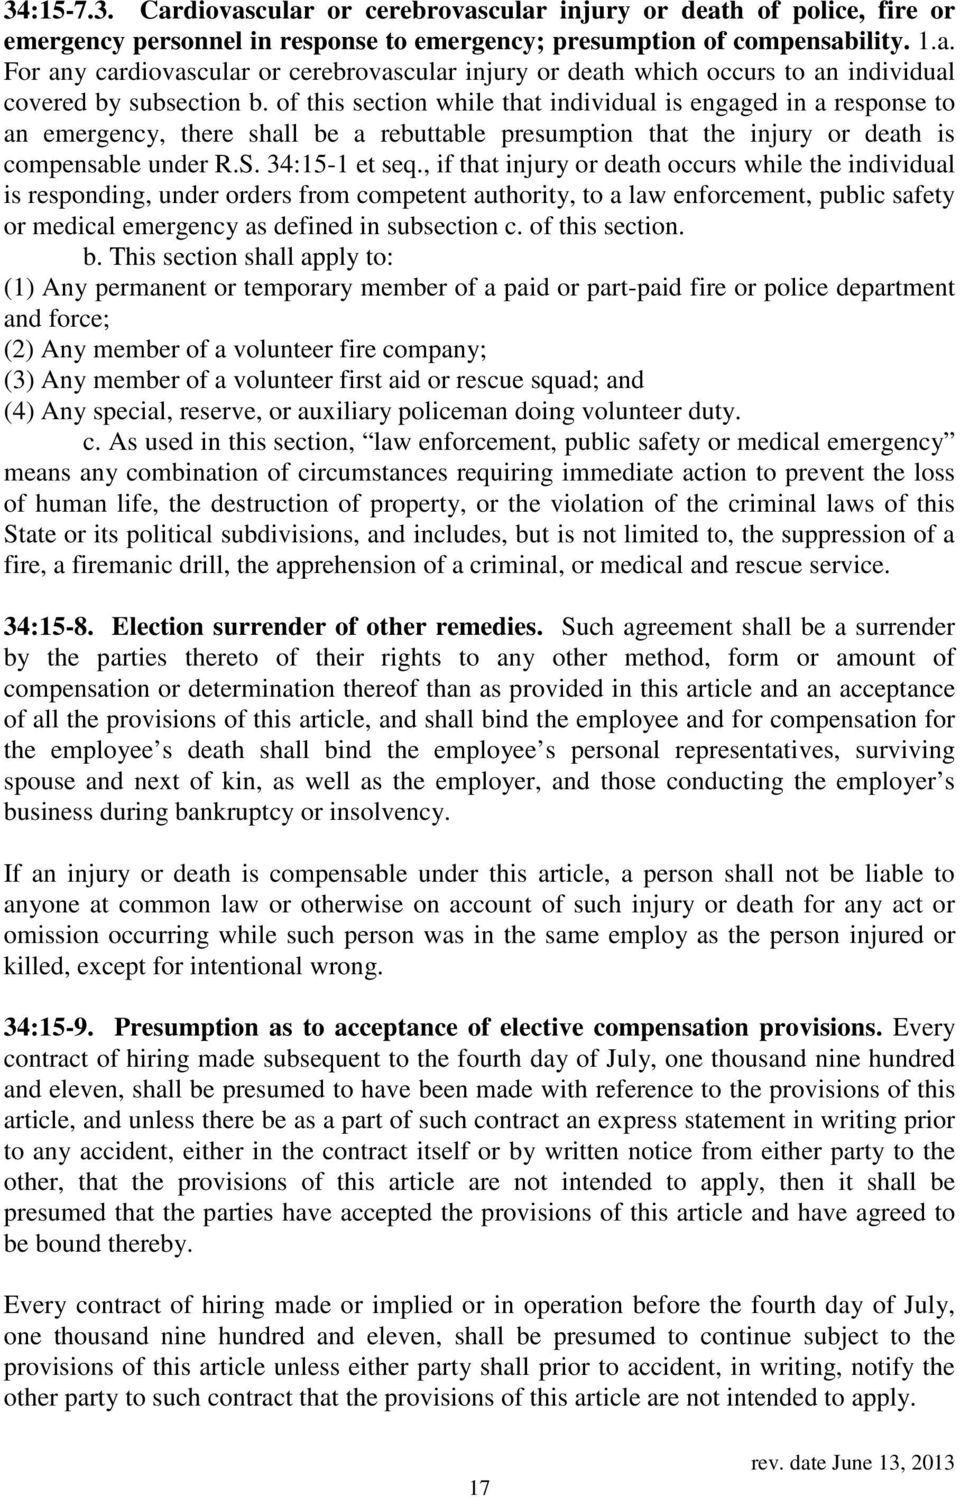 , if that injury or death occurs while the individual is responding, under orders from competent authority, to a law enforcement, public safety or medical emergency as defined in subsection c.